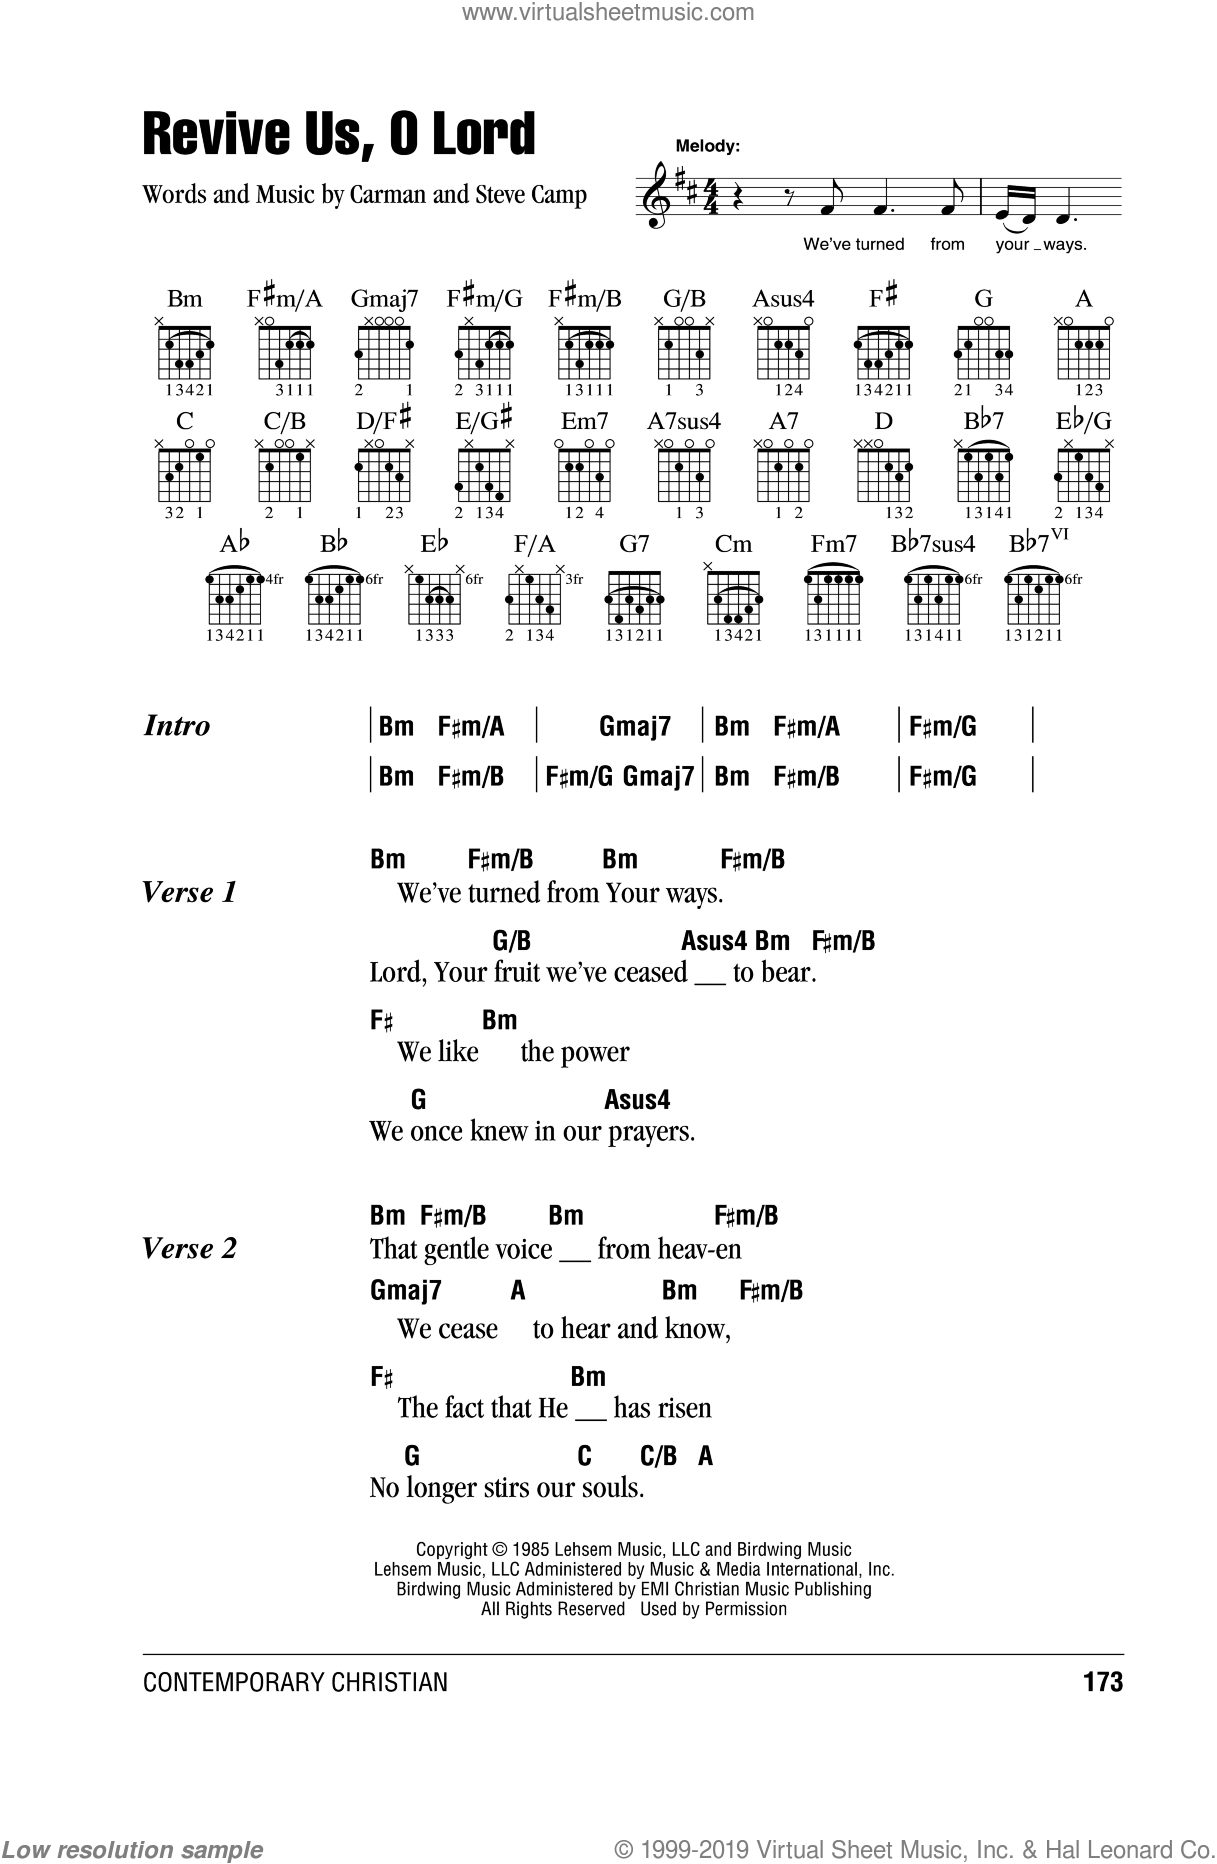 Revive Us, O Lord sheet music for guitar (chords, lyrics, melody) by Carman